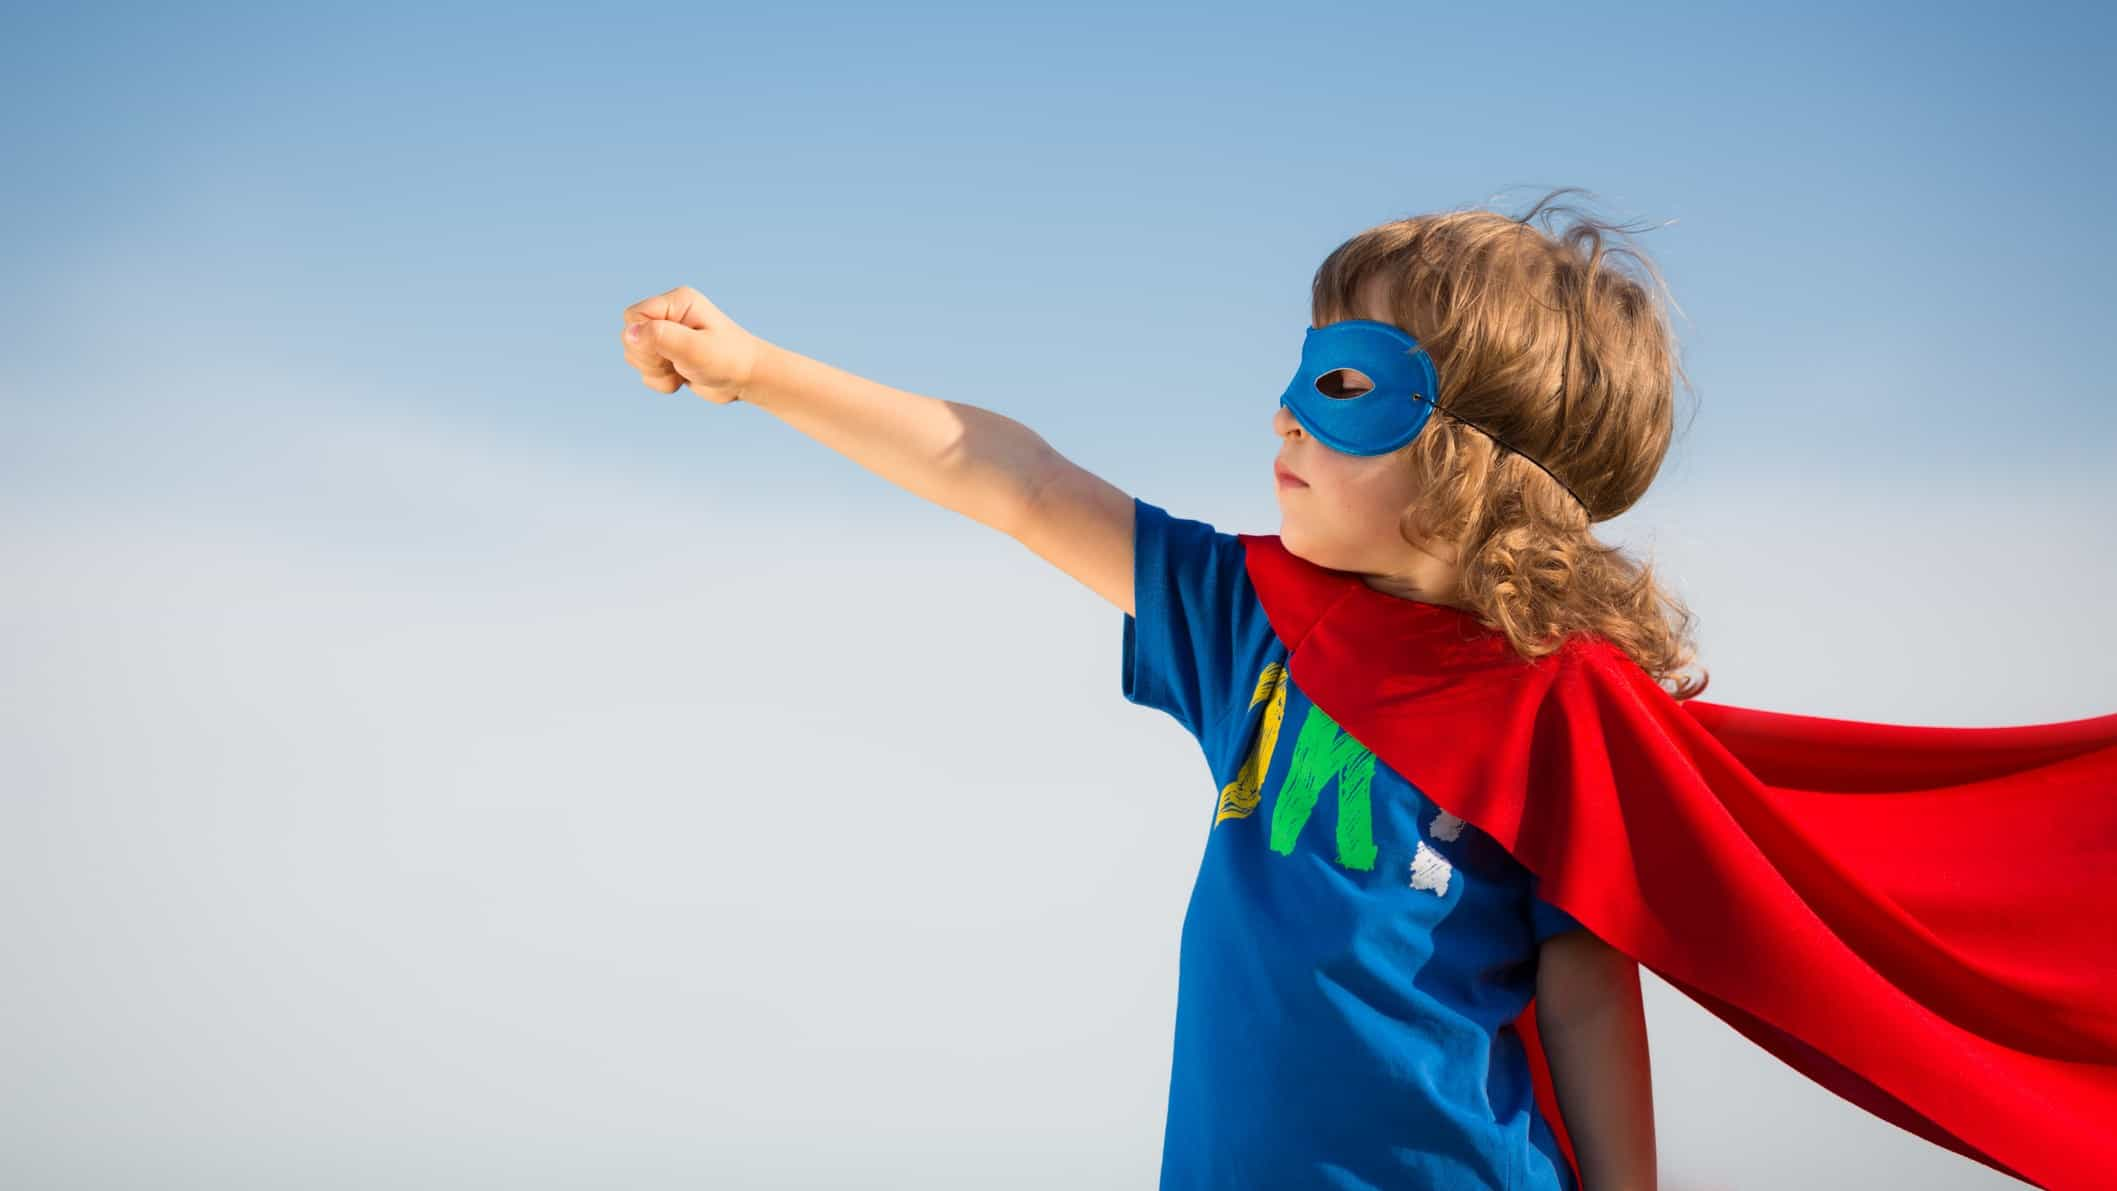 child in superman outfit pointing skyward